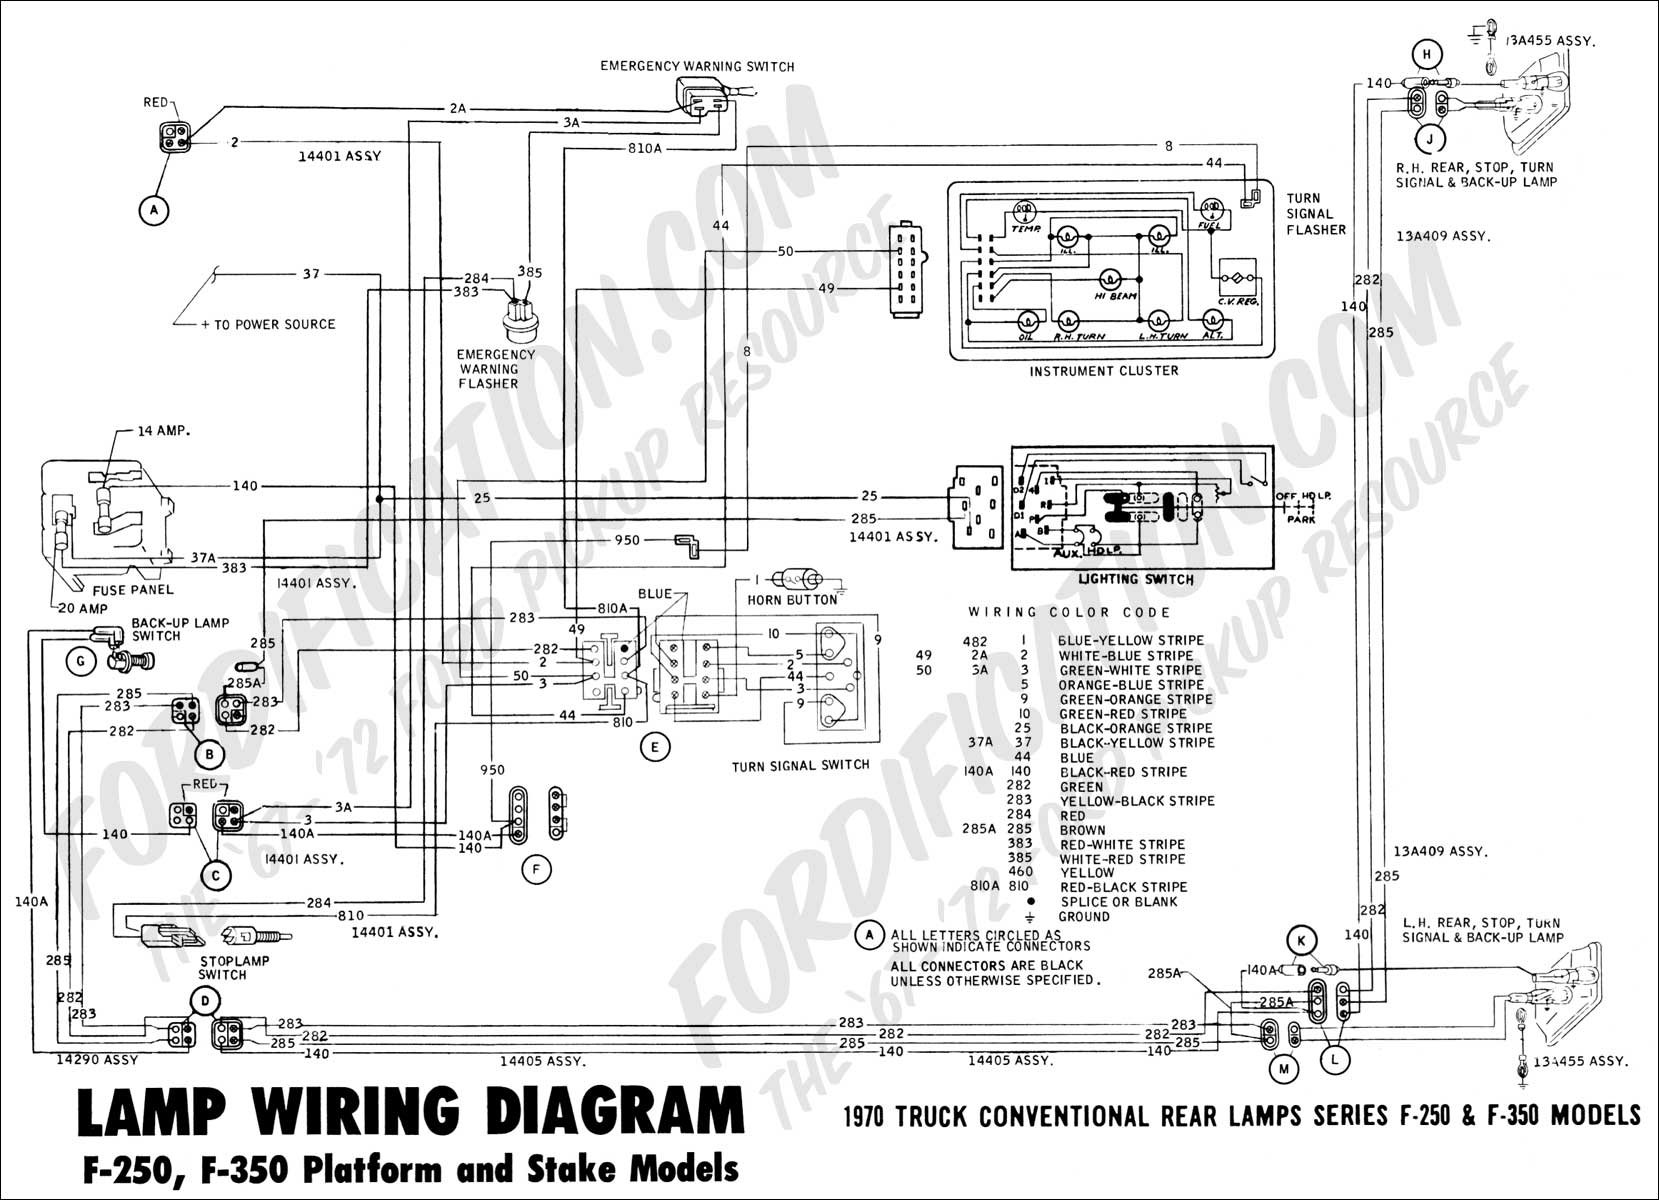 ke light wiring diagram how works wiring diagram echo work light tools ke light wiring diagram how works #4